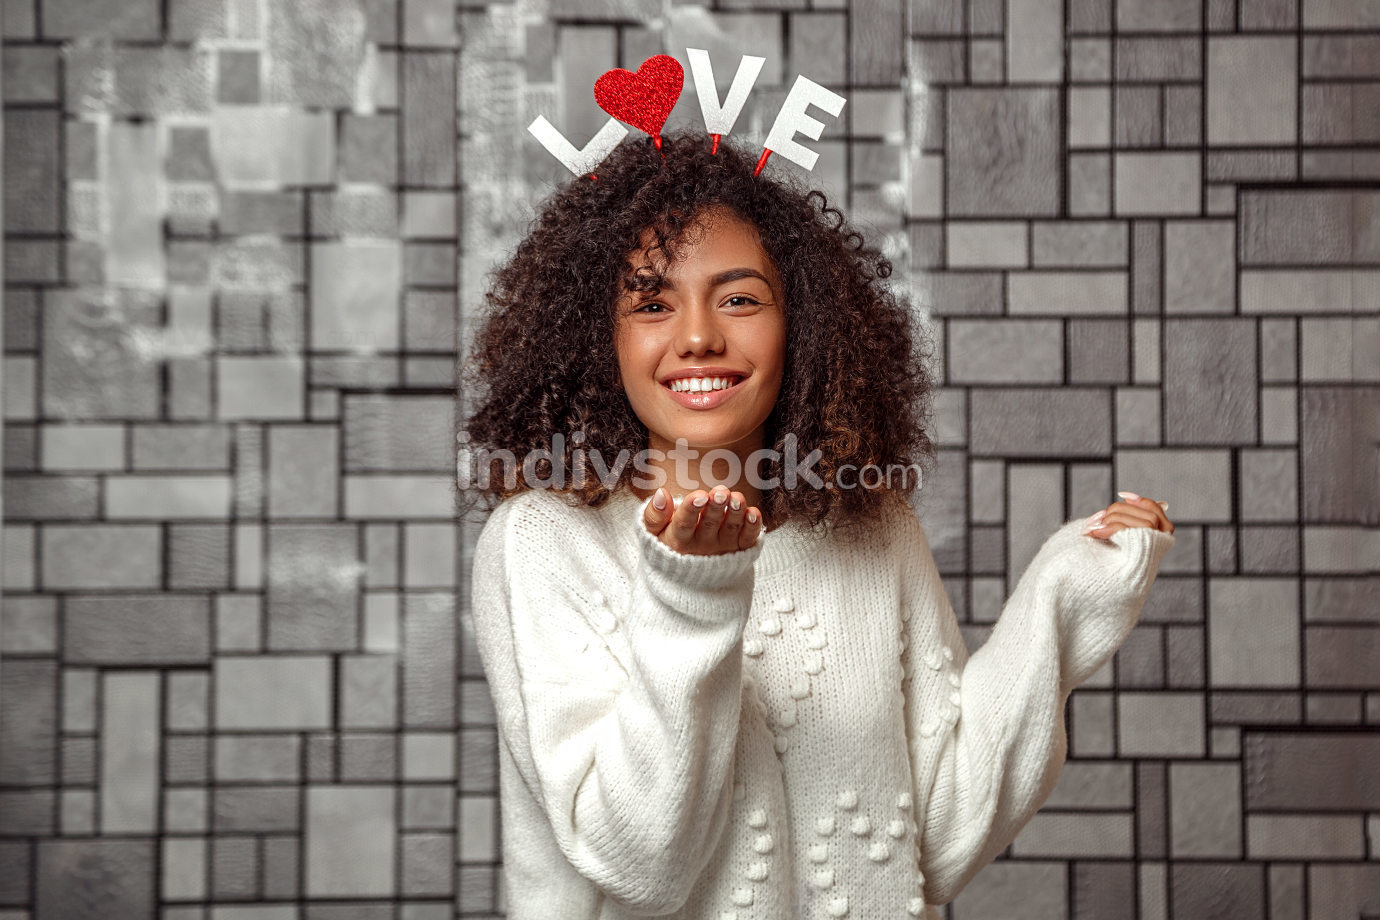 a young beautiful curly haired girl with a rim with the inscription love on her head sends a kiss through the air .Emotions and pleasant feelings concept.